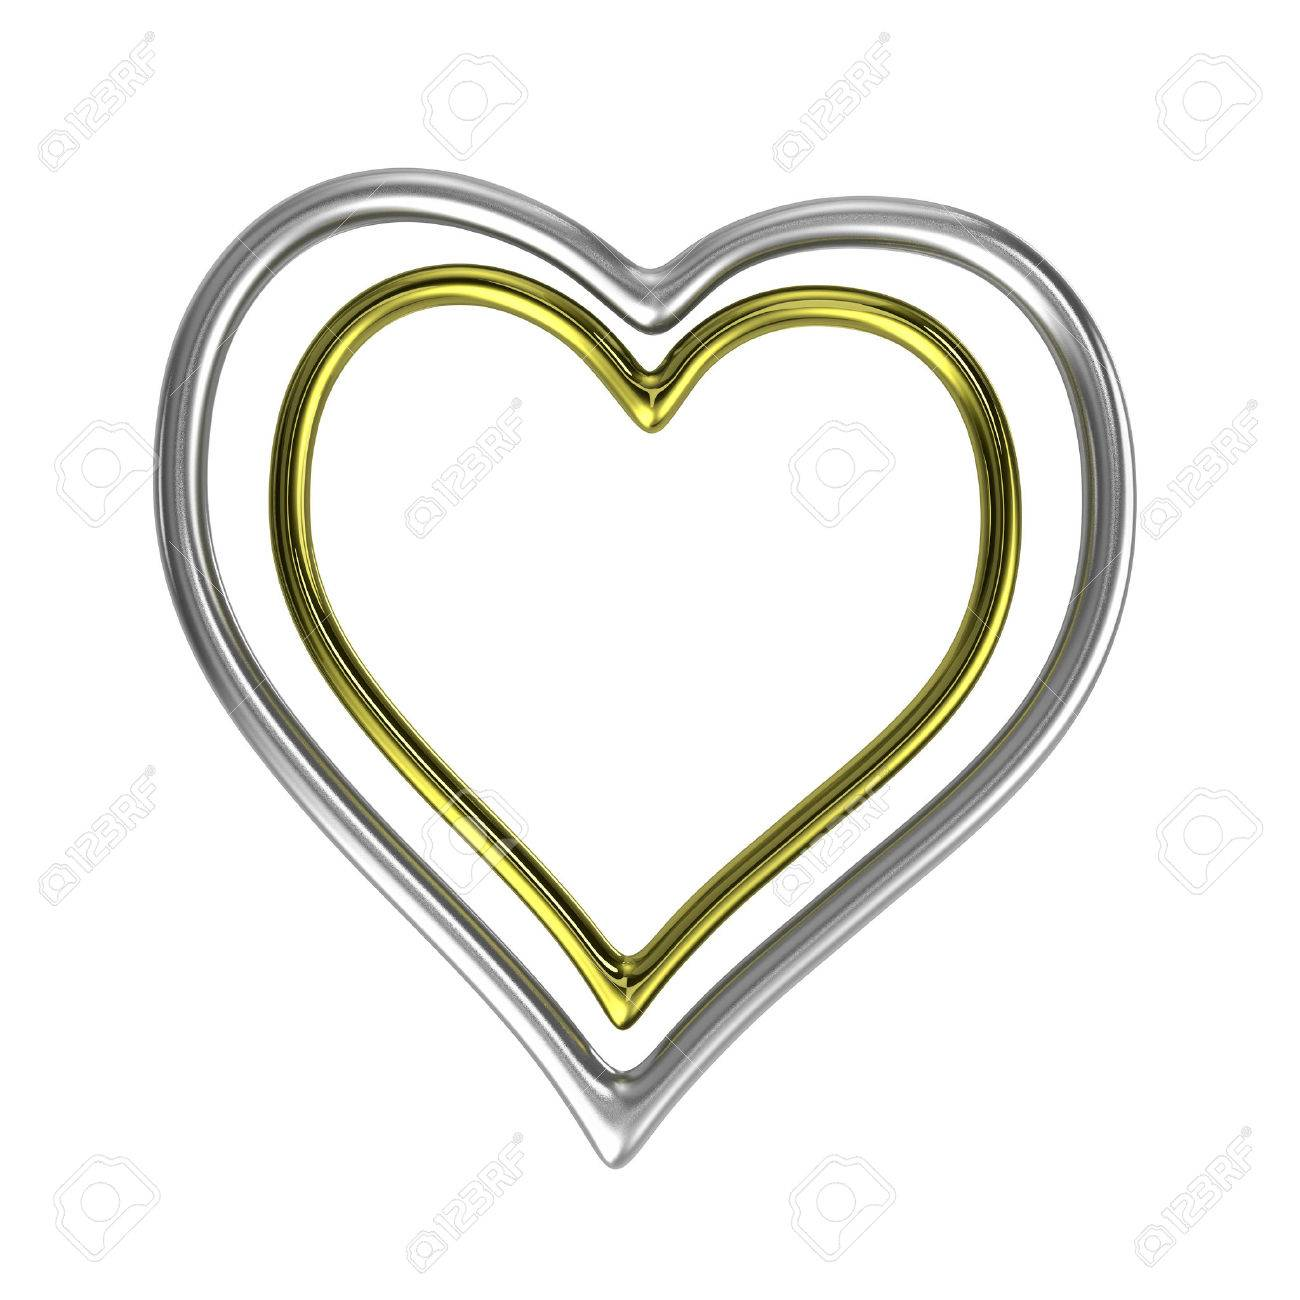 two concentric heart shaped golden and silver rings frame isolated